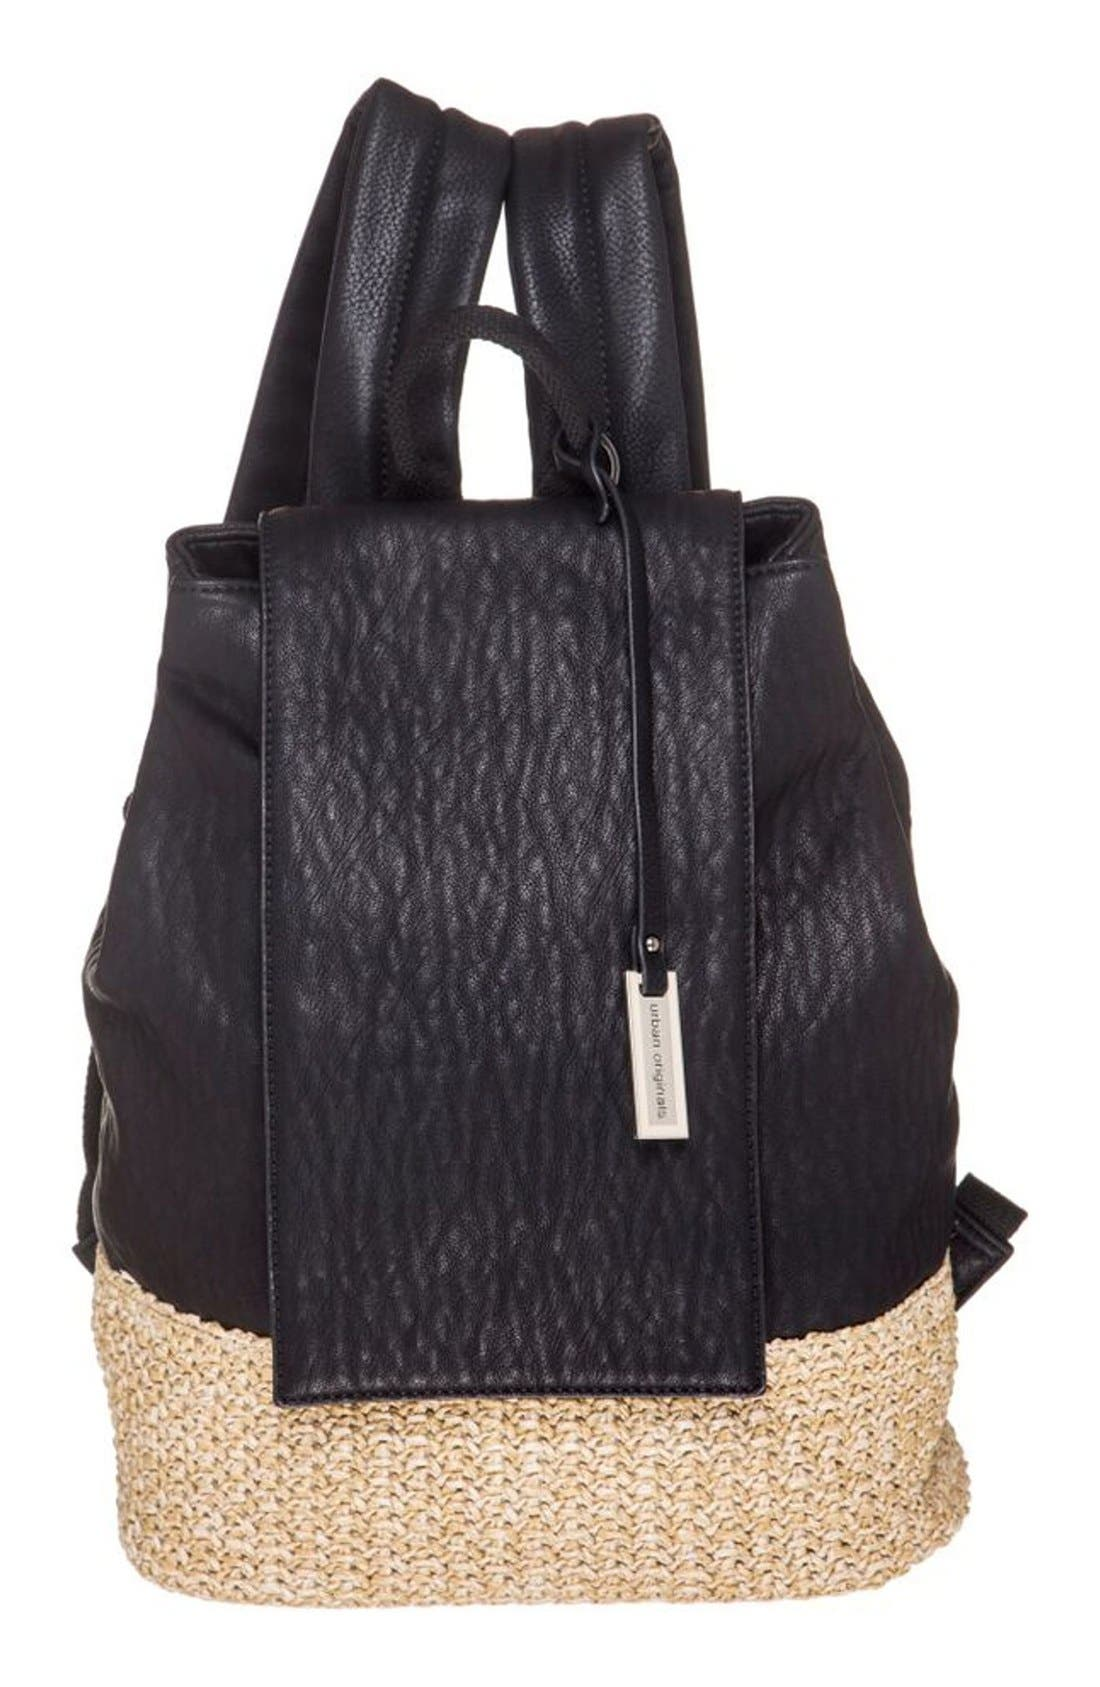 Alternate Image 1 Selected - Urban Originals 'Dune Diamond' Faux Leather & Straw Backpack